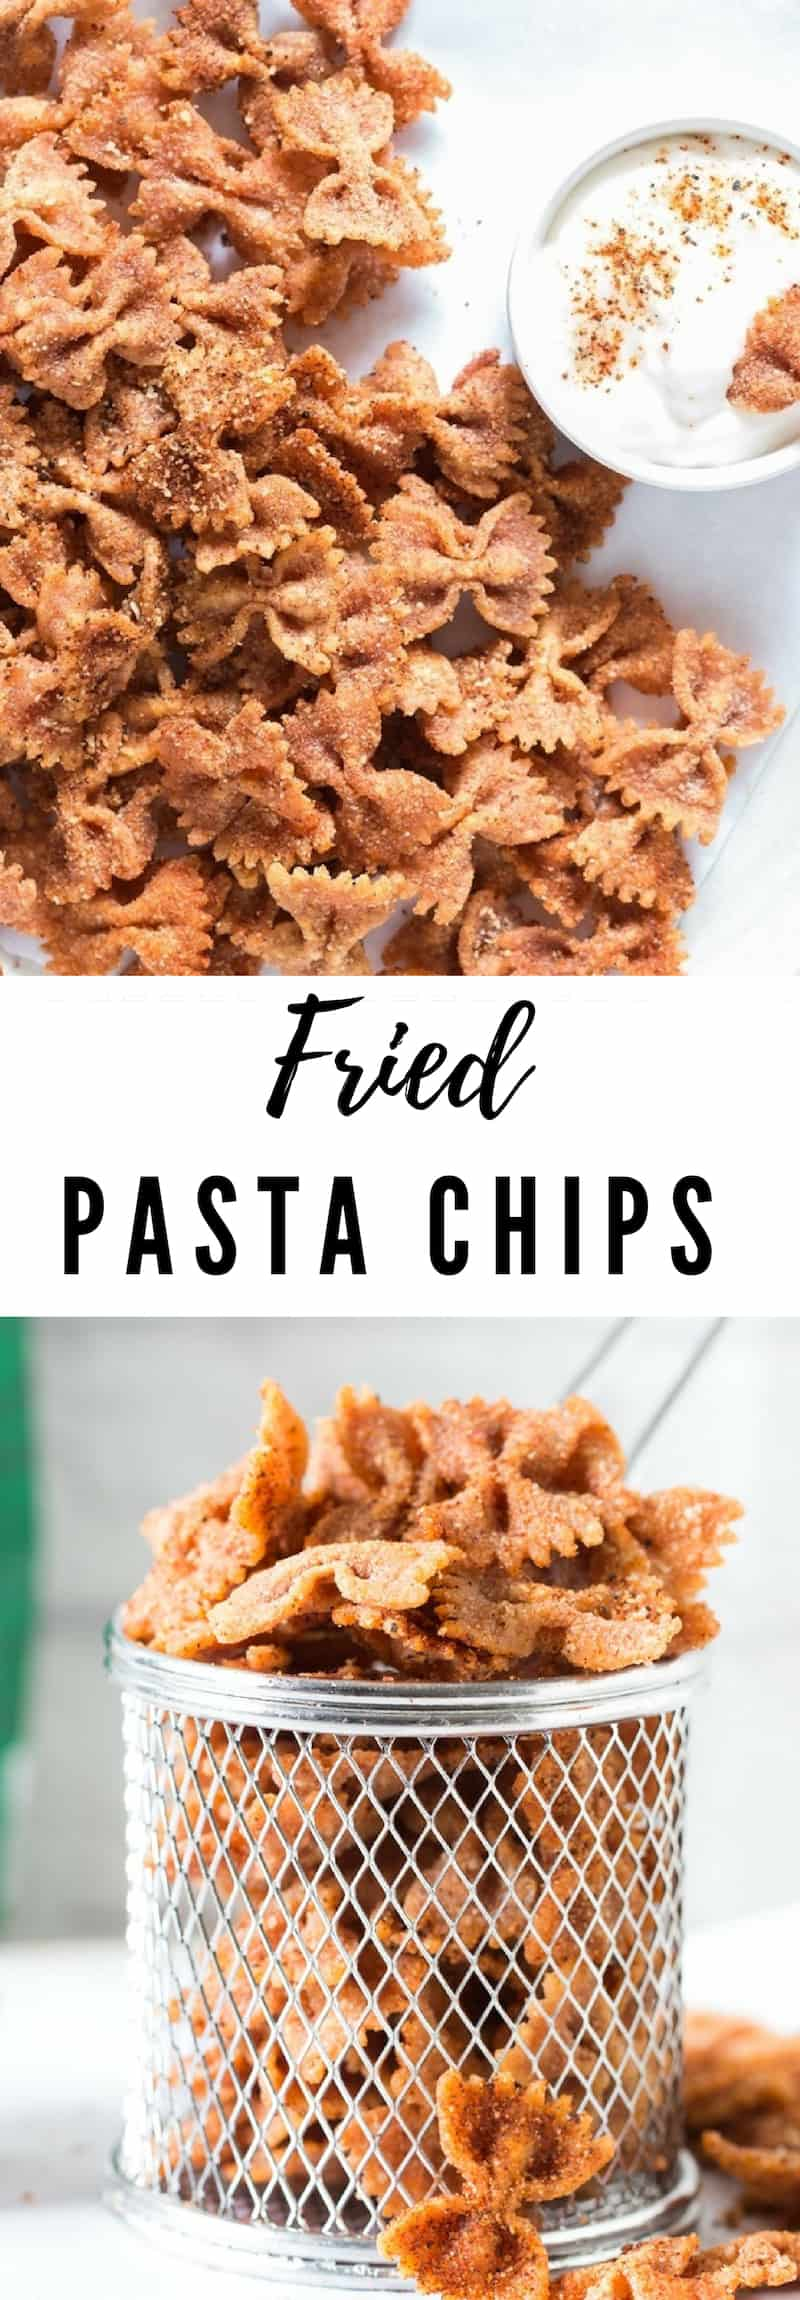 crispy fried pasta chips with text overlay